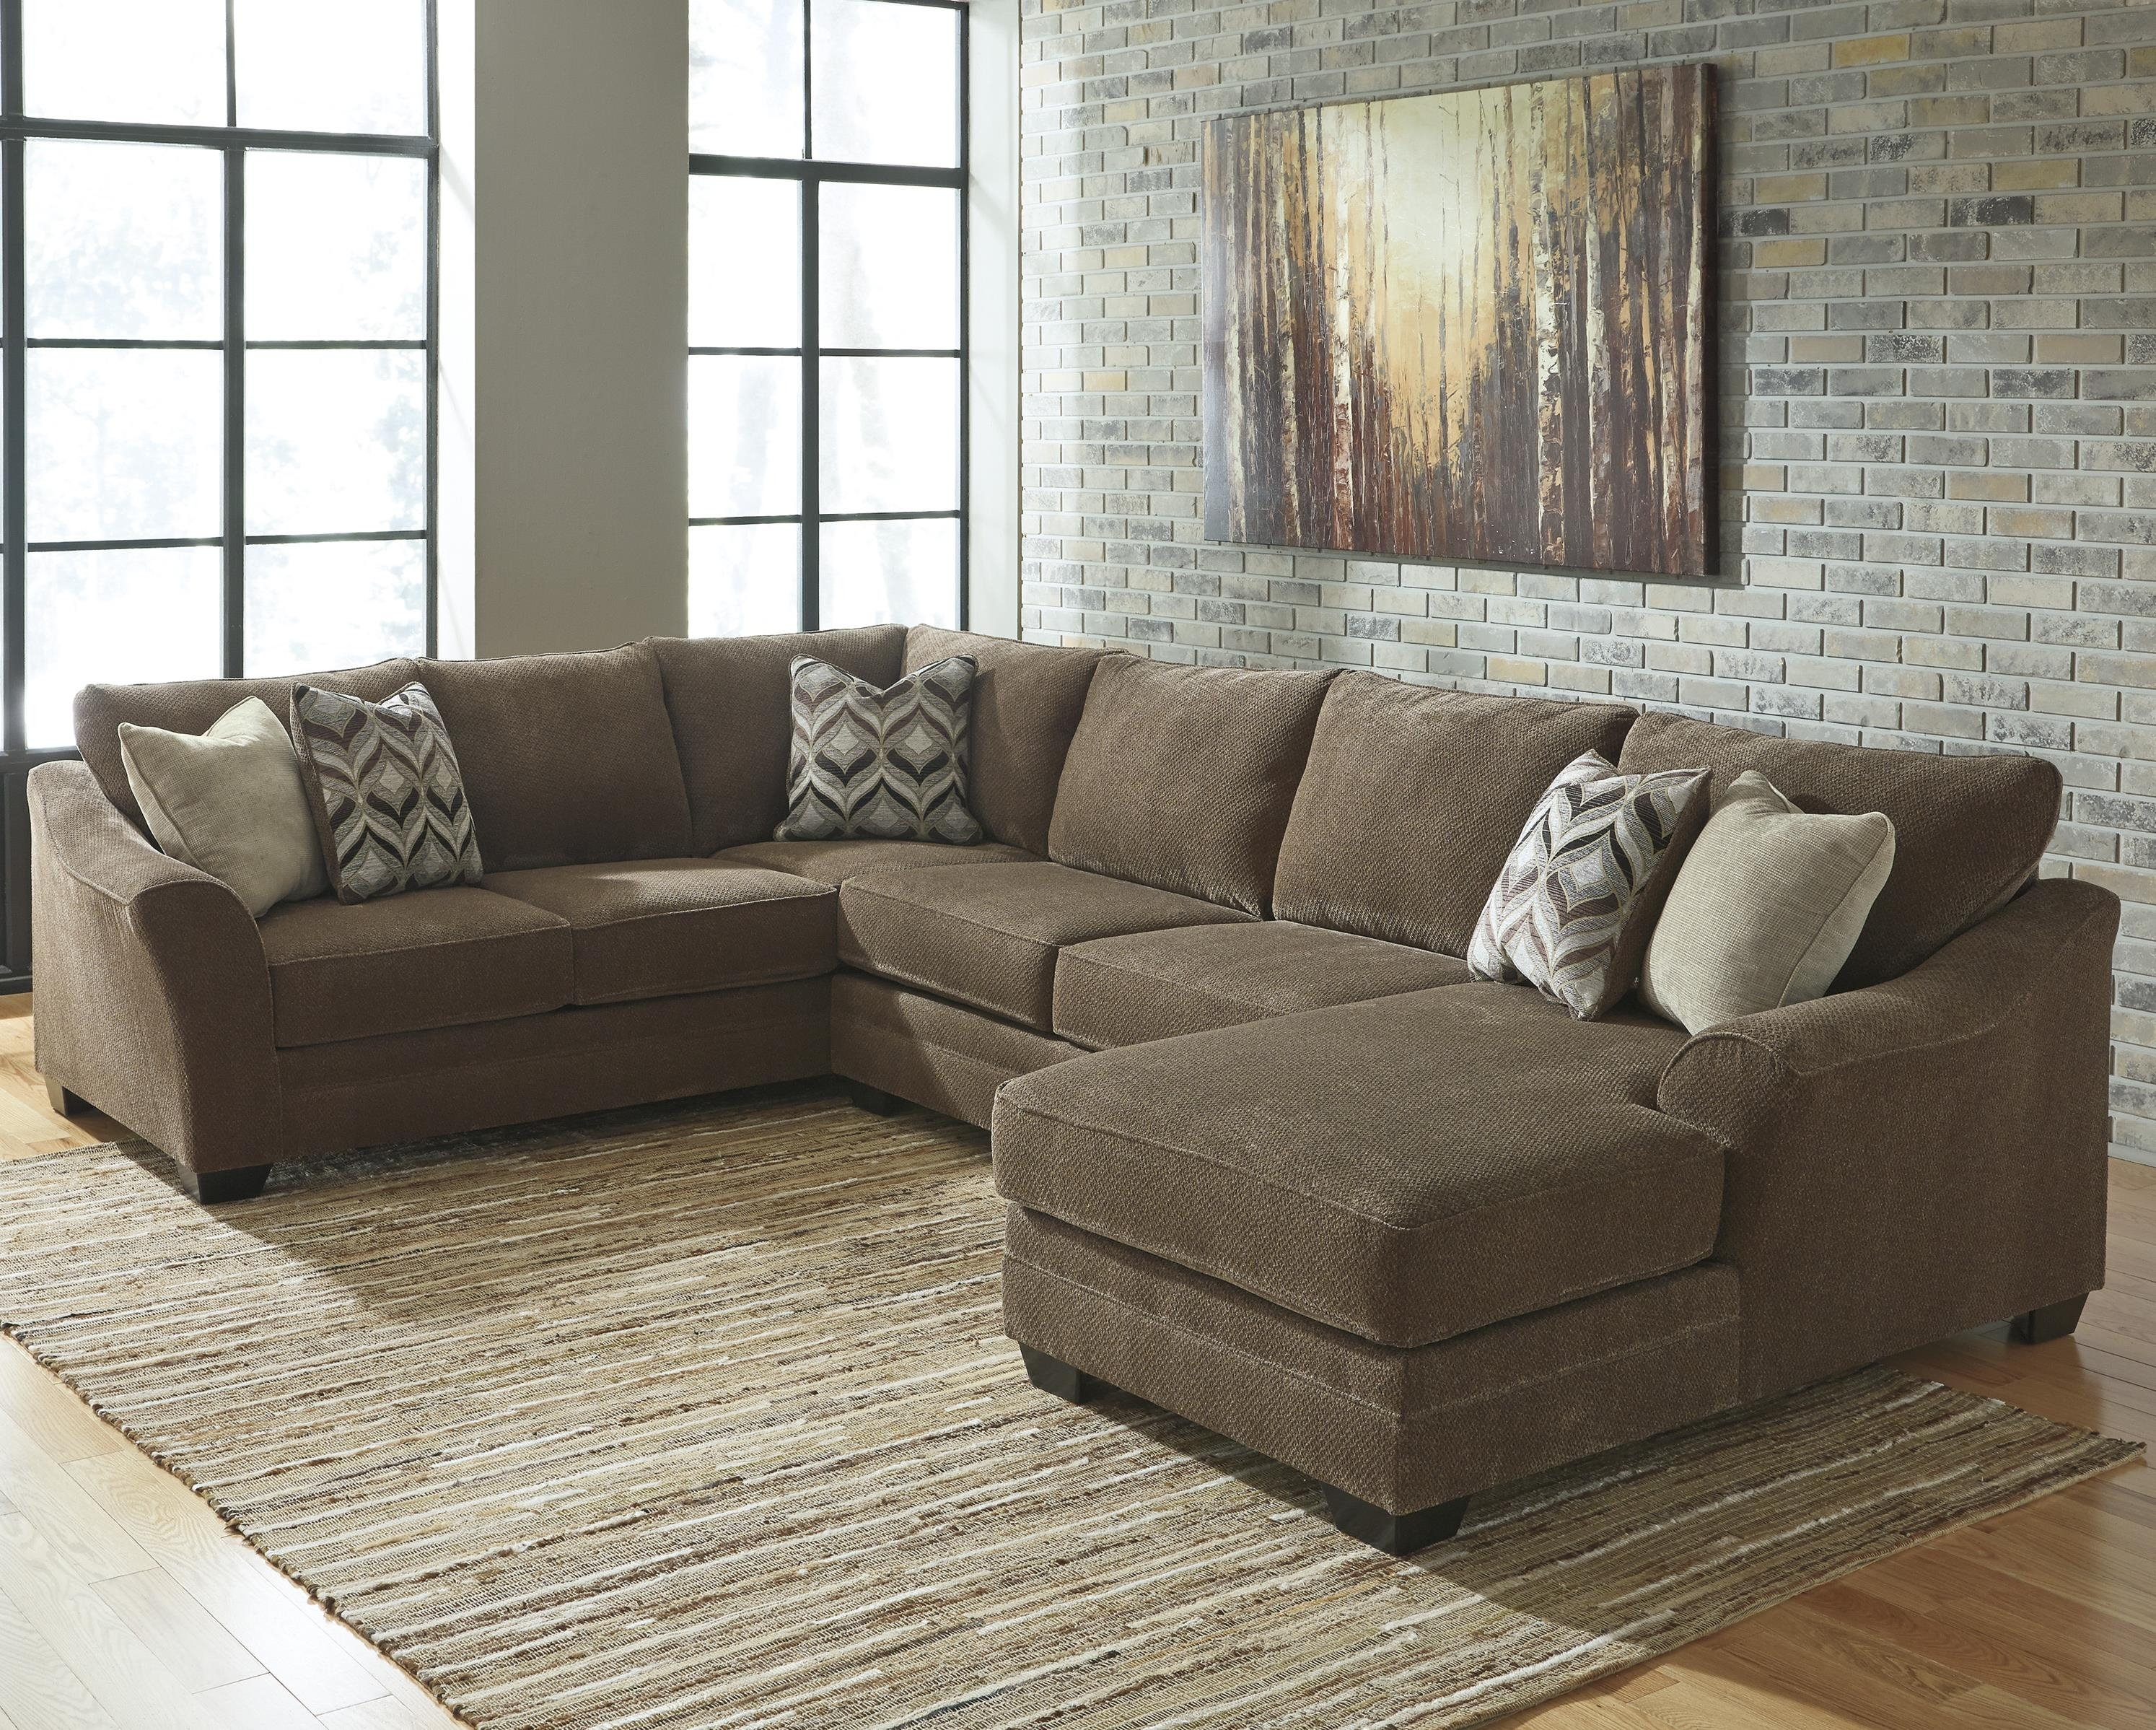 3 Piece Sectional – Locsbyhelenelorasa With Regard To Delano Smoke 3 Piece Sectionals (Image 2 of 25)